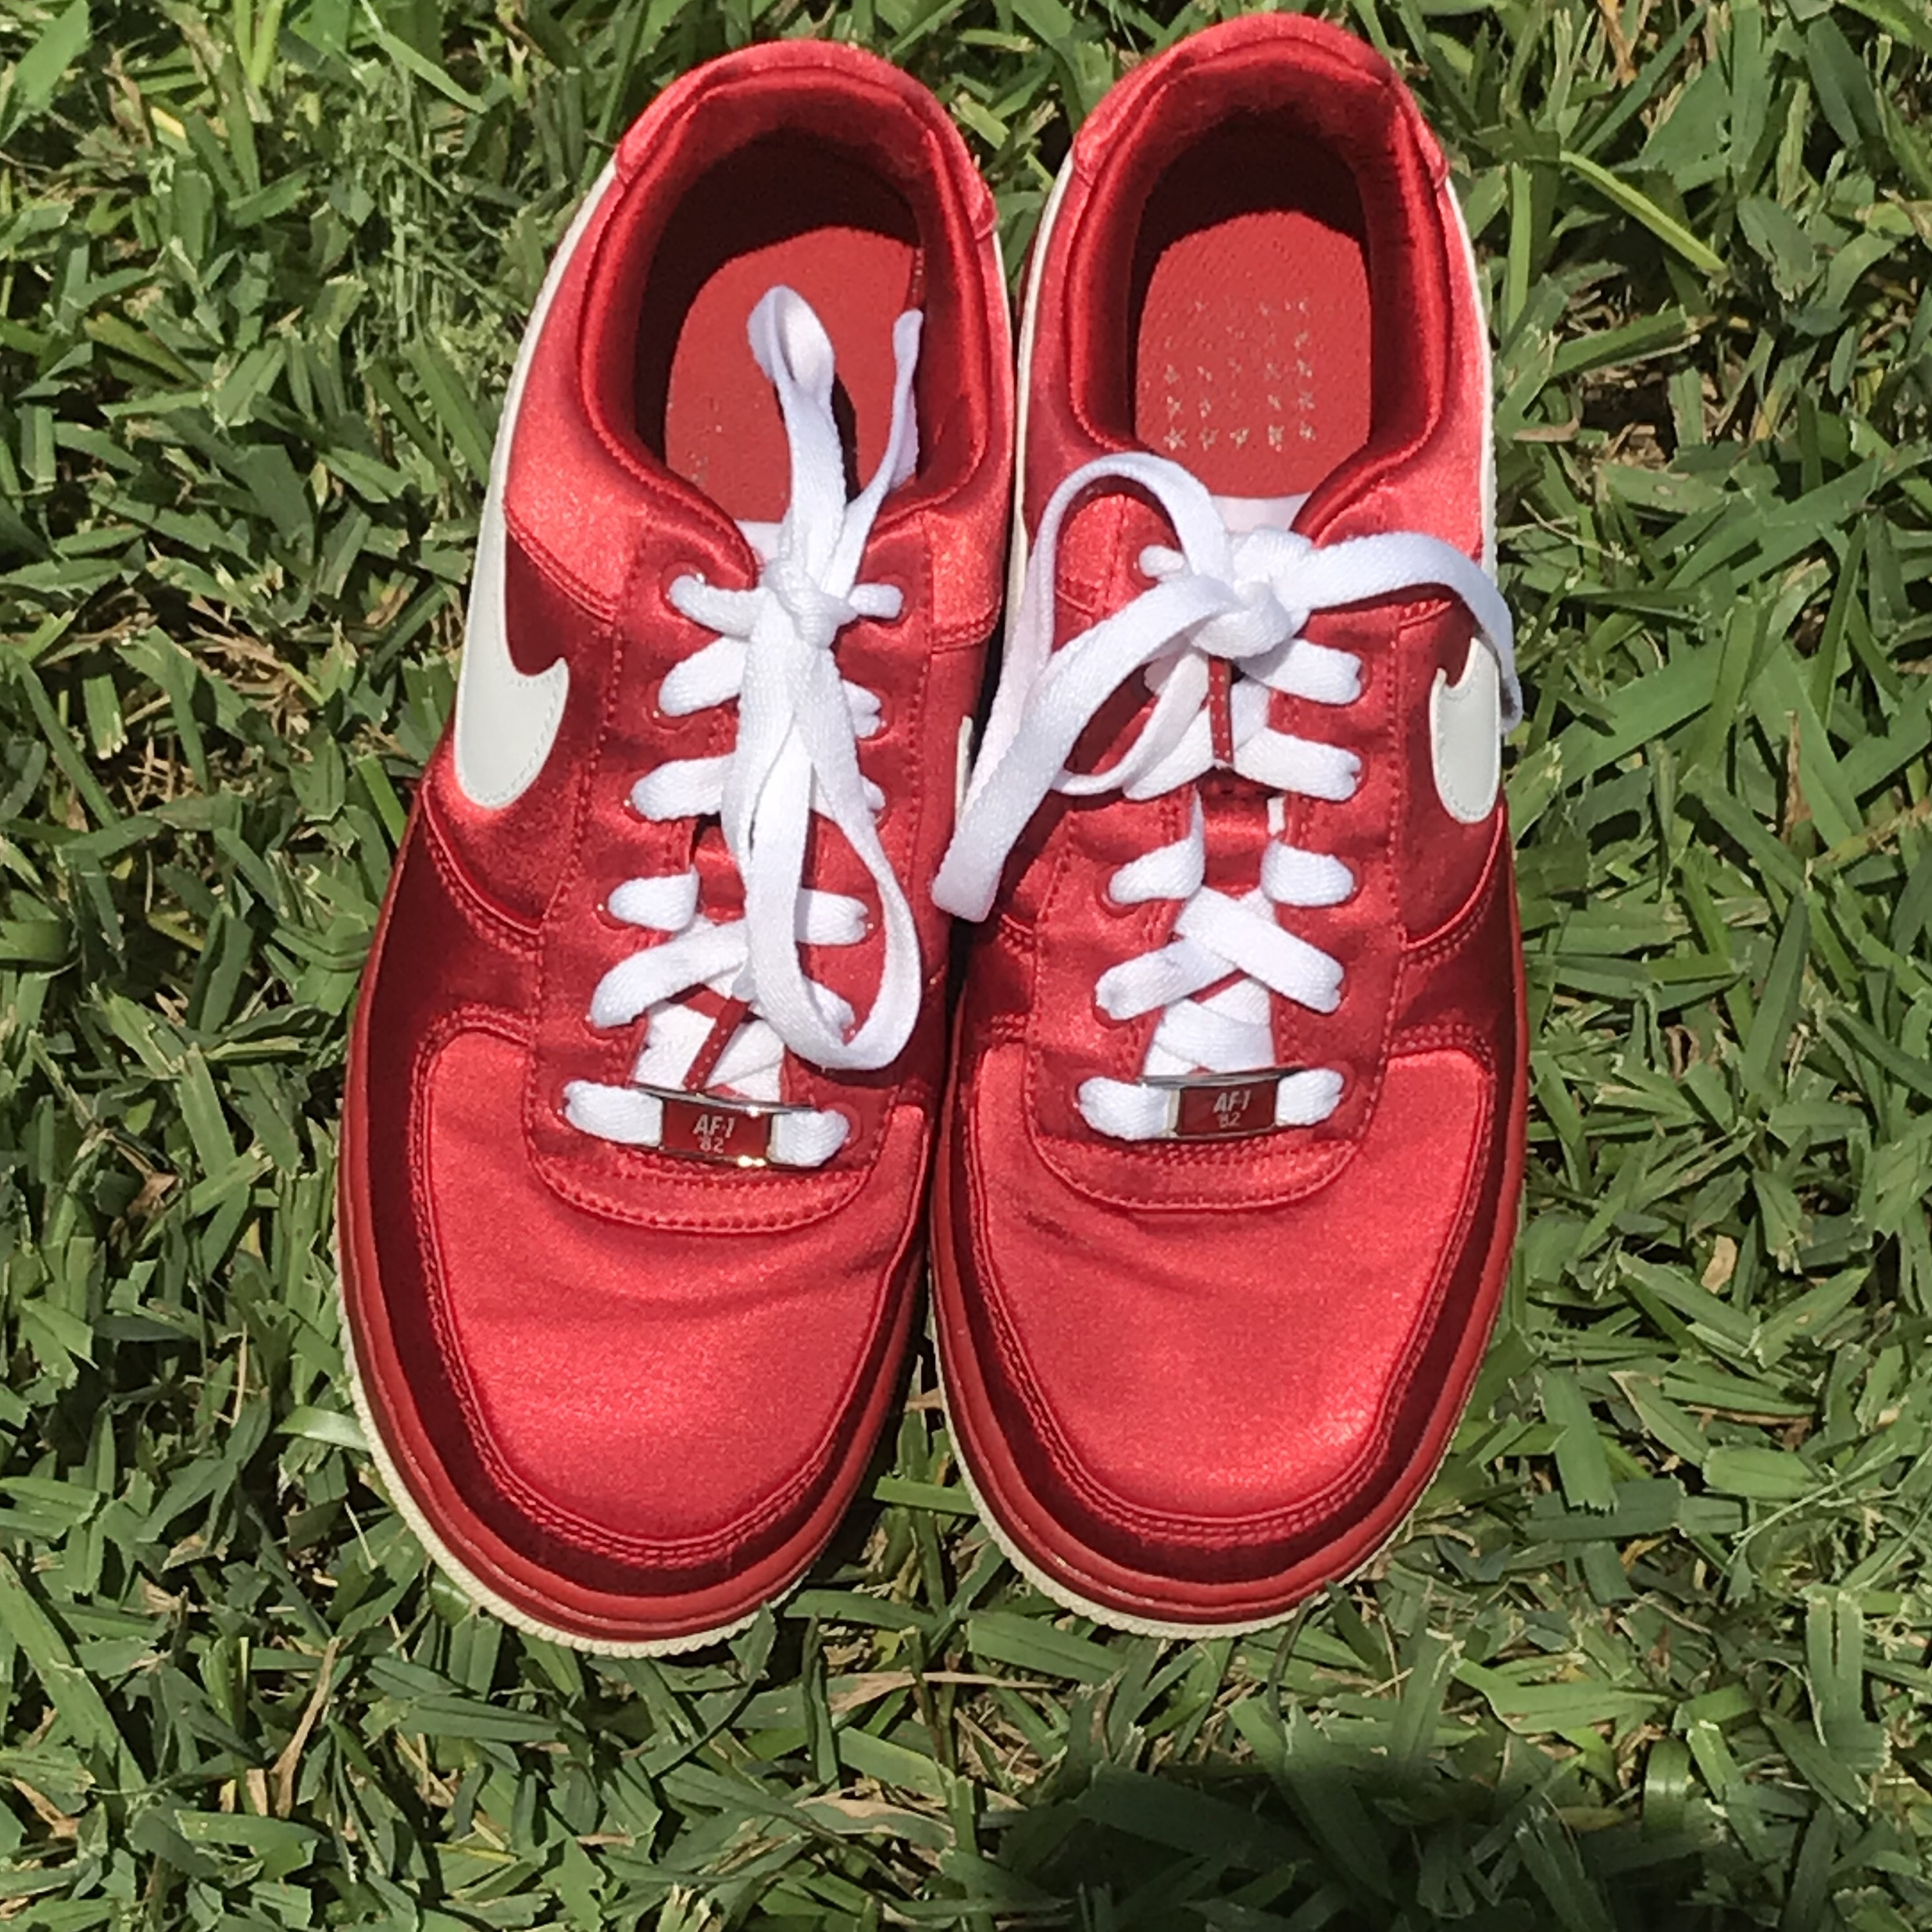 Nike Air Force XXV Satin Red Shoes